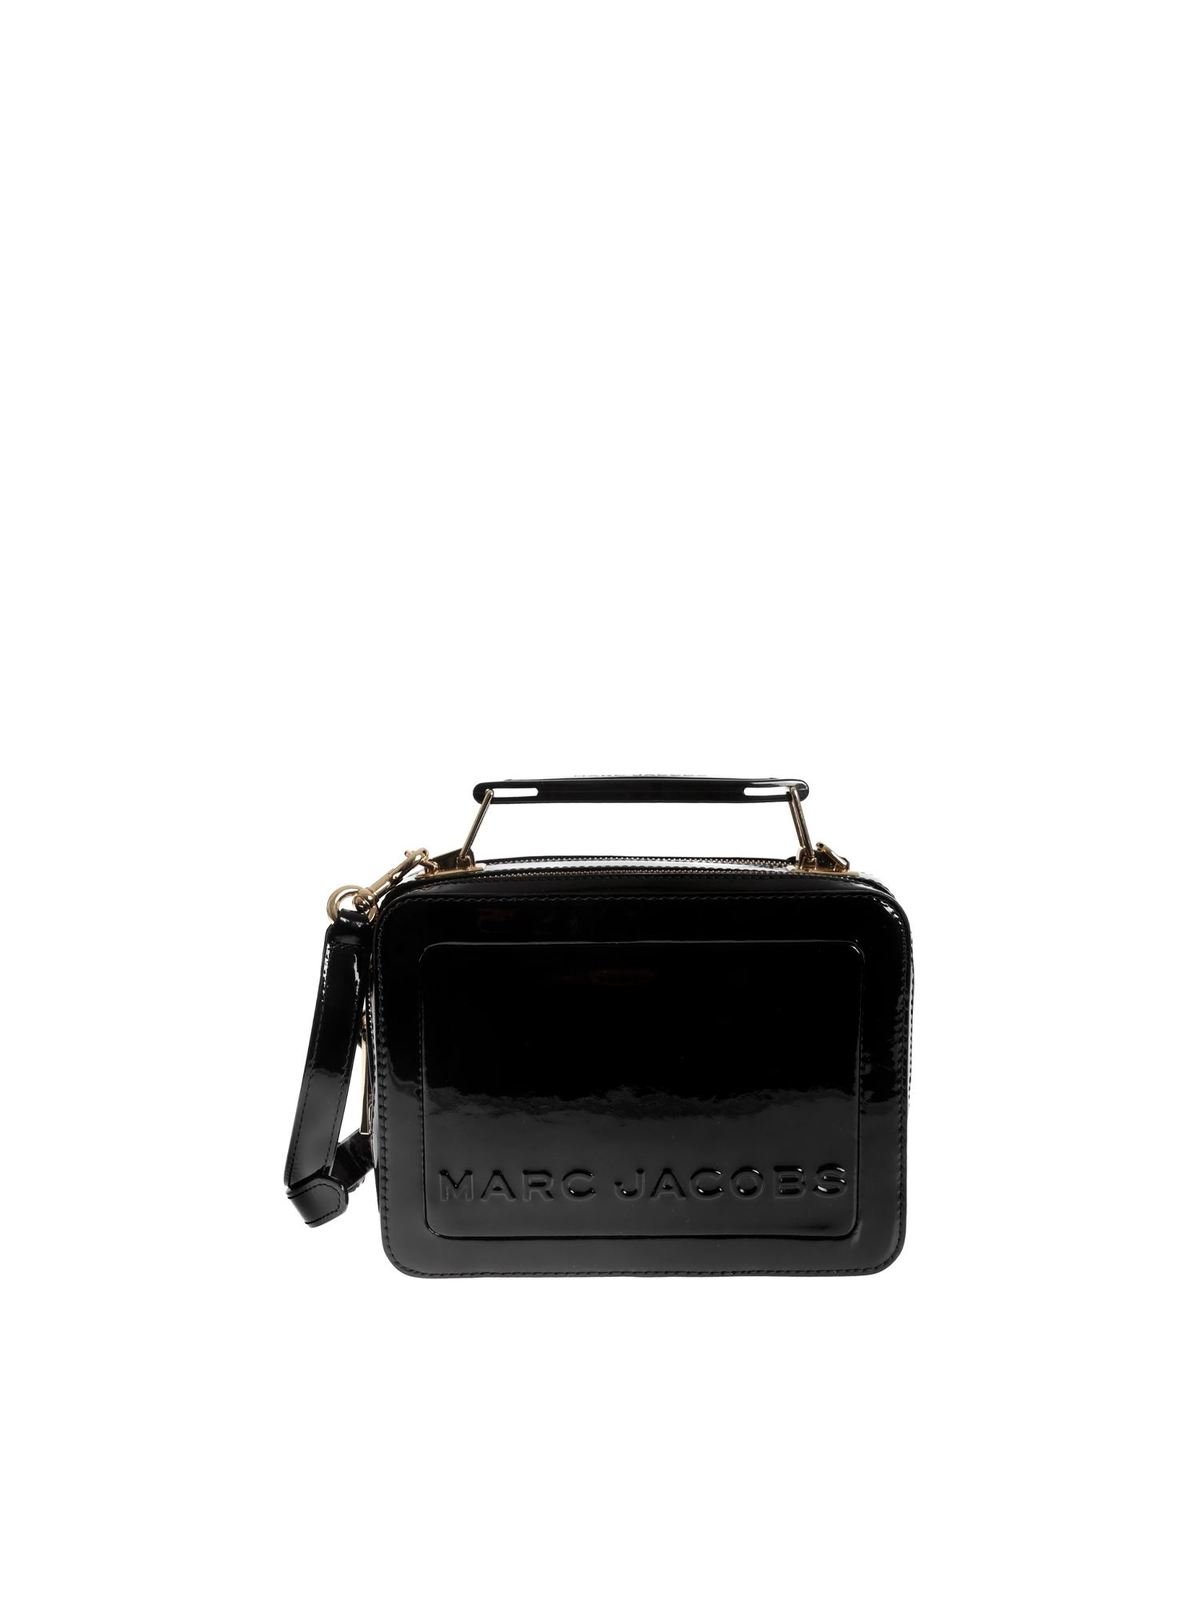 Marc Jacobs Handbags THE PATENT BOX BAG IN BLACK